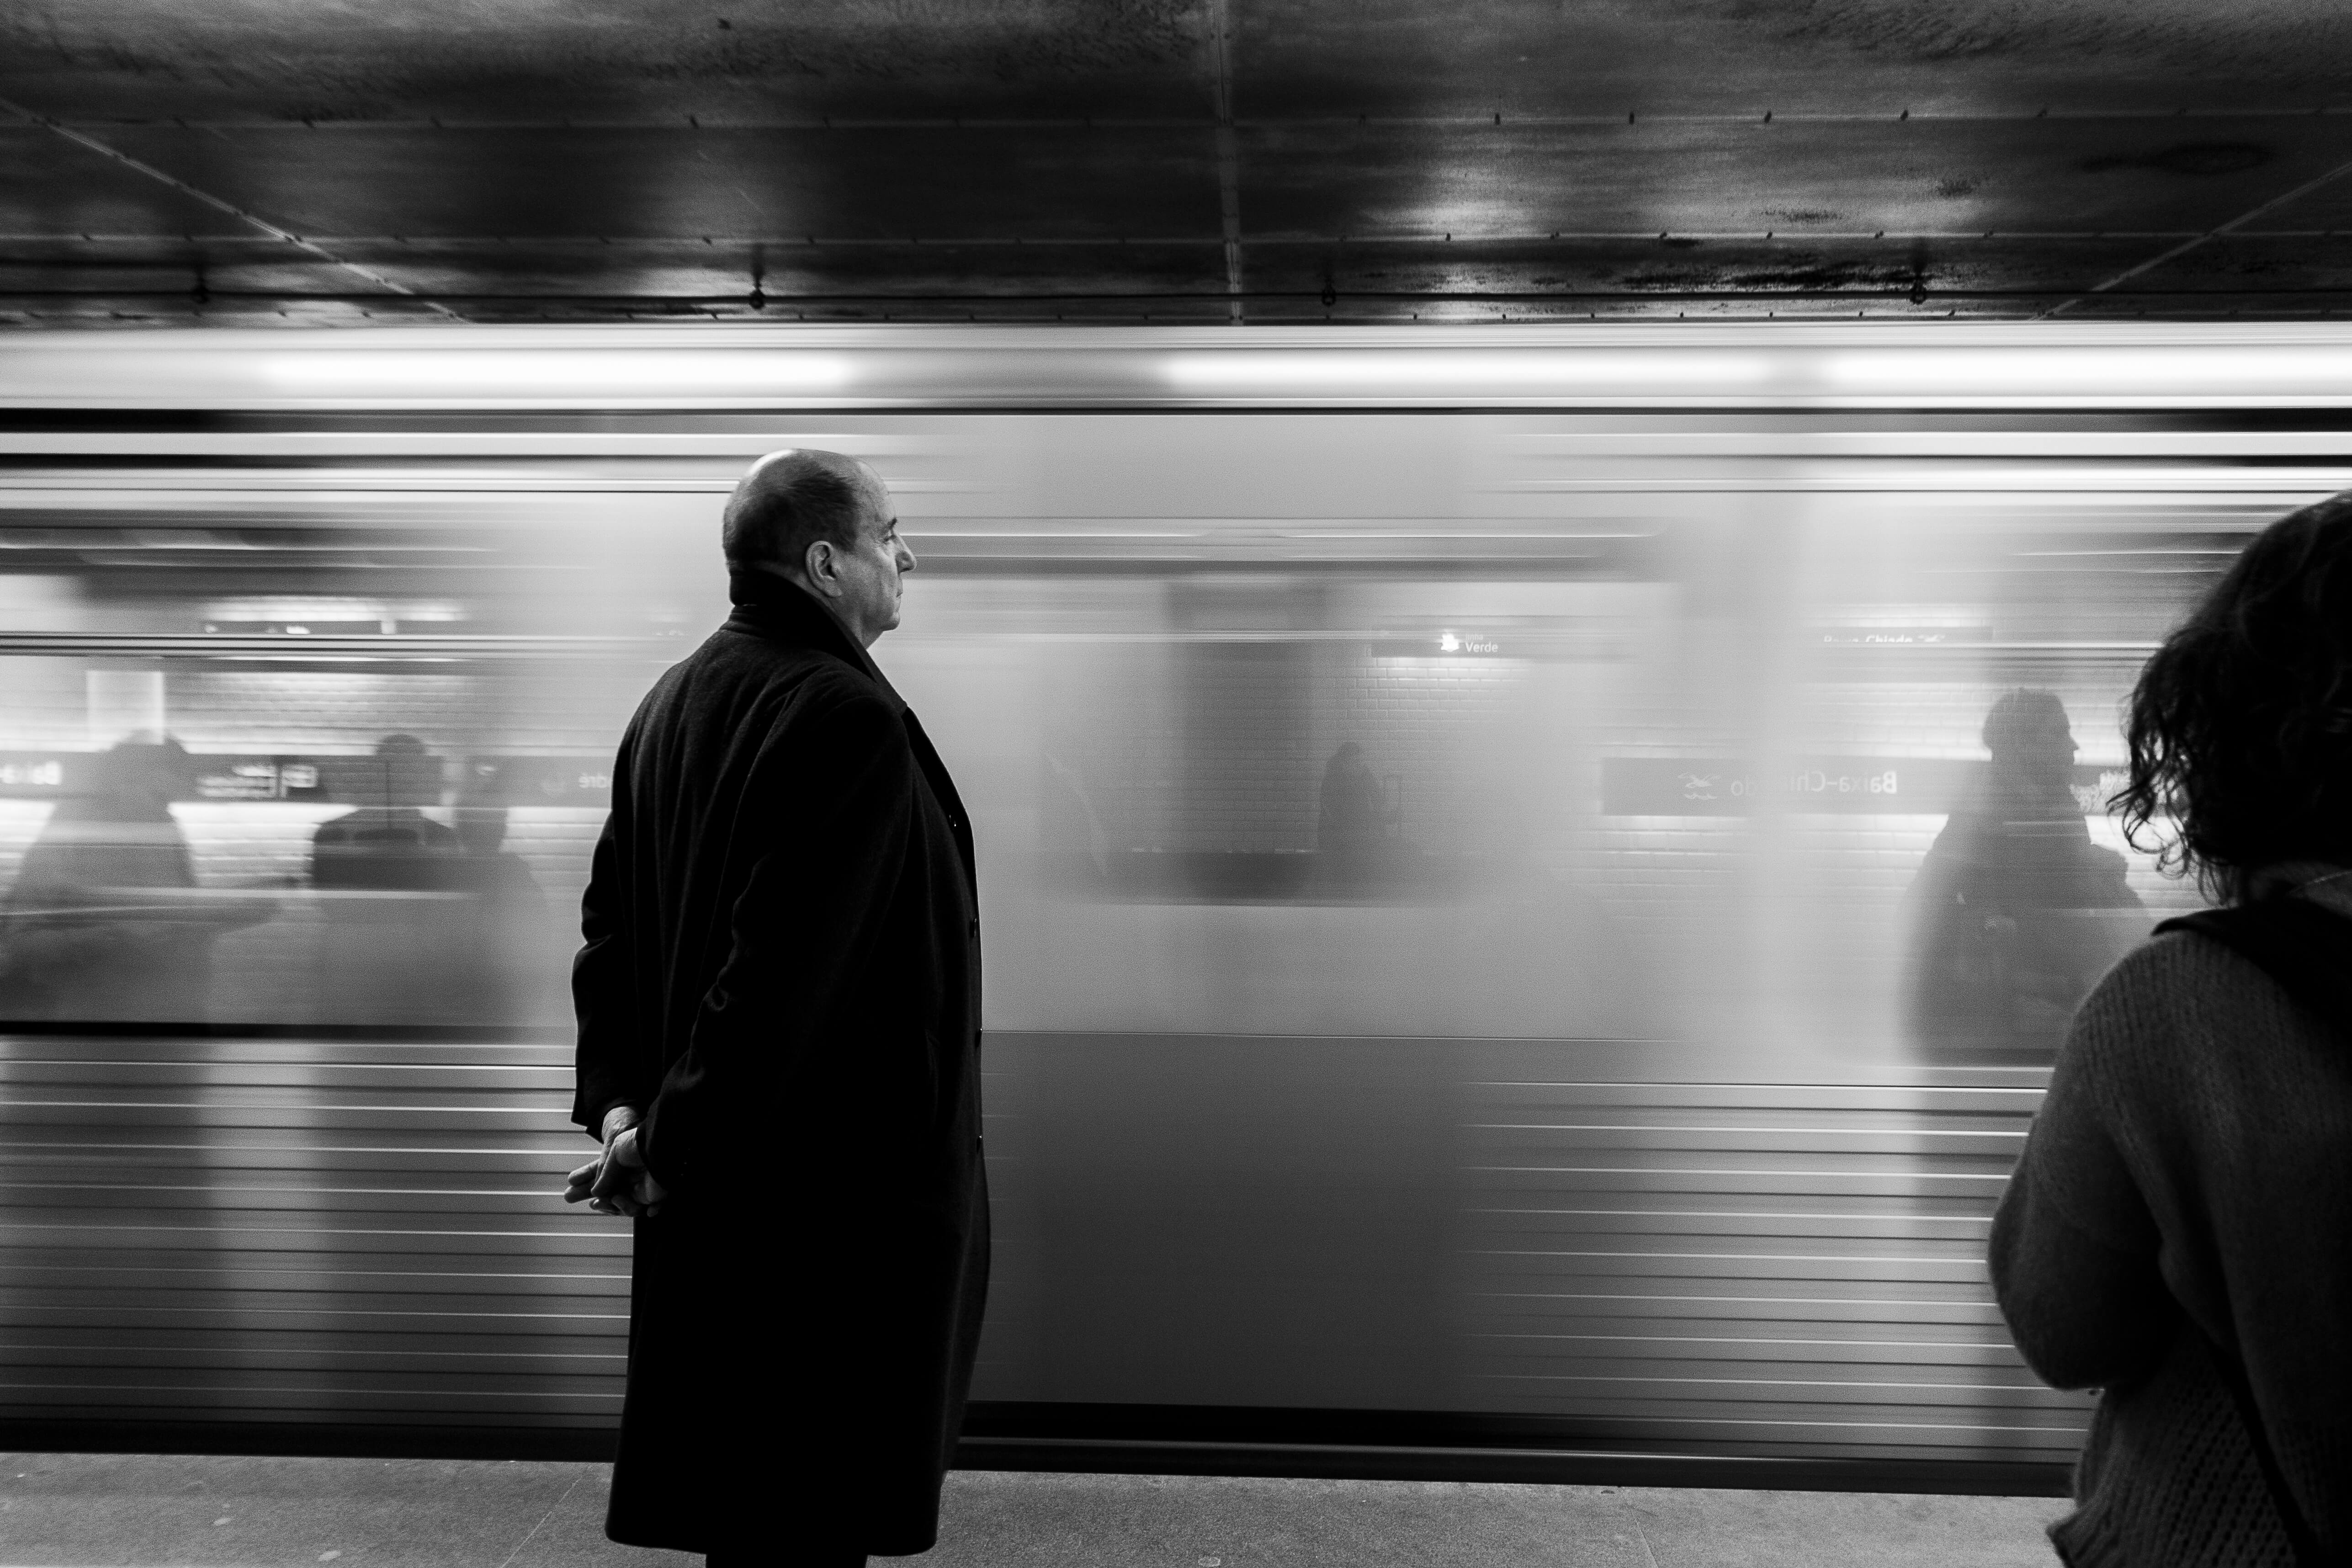 life goes on picture of a man standing on the subway as a train goes past